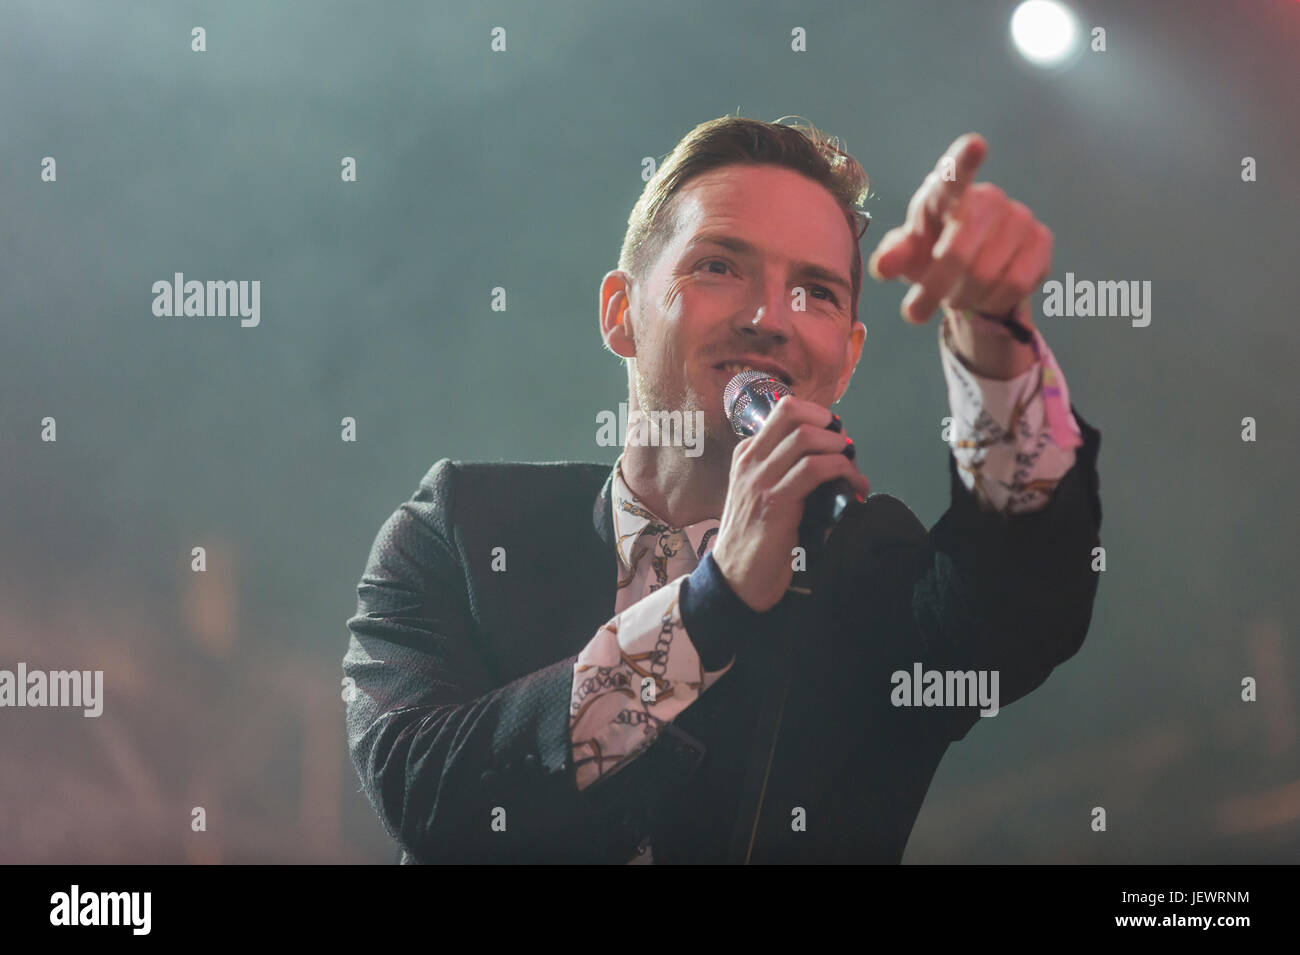 Dundrennan Scotland, UK - July 26, 2014: Dan Gillespie Sells of The Feeling performs at the Wickerman Festival - Stock Image